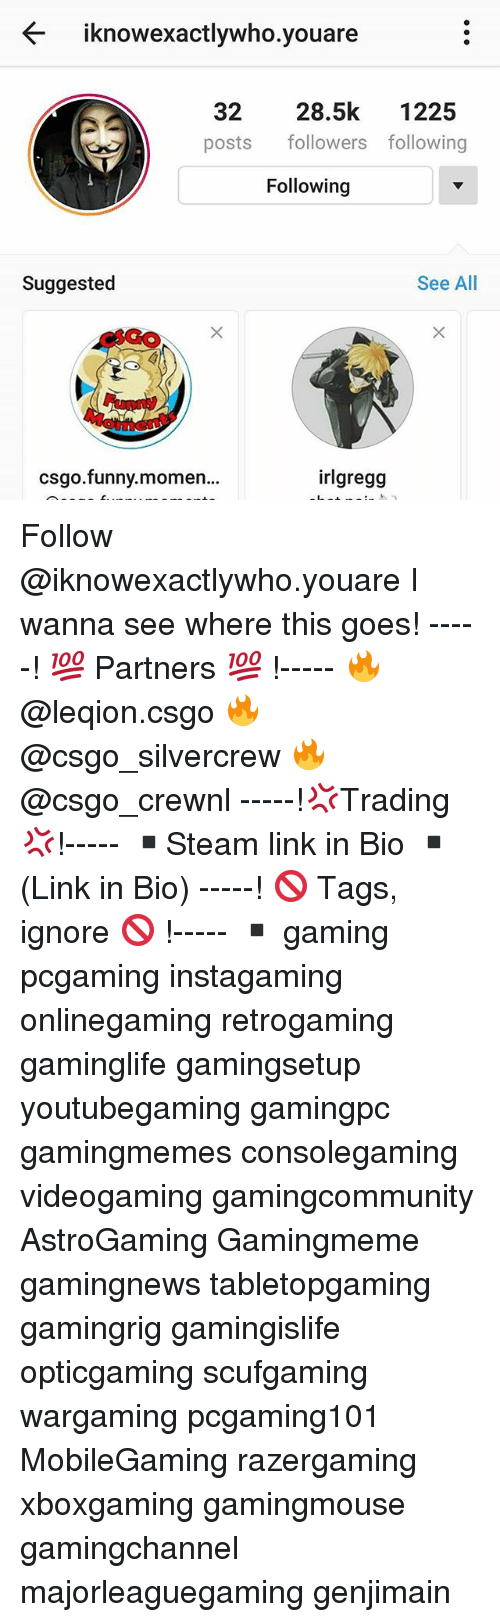 Cs Go Funny: iknowexactlywho you are  32  28.5k  1225  posts followers following  Following  Suggested  See All  cs go funny momen...  irlgregg Follow @iknowexactlywho.youare I wanna see where this goes! -----! 💯 Partners 💯 !----- 🔥 @leqion.csgo 🔥 @csgo_silvercrew 🔥 @csgo_crewnl -----!💢Trading 💢!----- ▪Steam link in Bio ▪(Link in Bio) -----! 🚫 Tags, ignore 🚫 !----- ▪ gaming pcgaming instagaming onlinegaming retrogaming gaminglife gamingsetup youtubegaming gamingpc gamingmemes consolegaming videogaming gamingcommunity AstroGaming Gamingmeme gamingnews tabletopgaming gamingrig gamingislife opticgaming scufgaming wargaming pcgaming101 MobileGaming razergaming xboxgaming gamingmouse gamingchannel majorleaguegaming genjimain